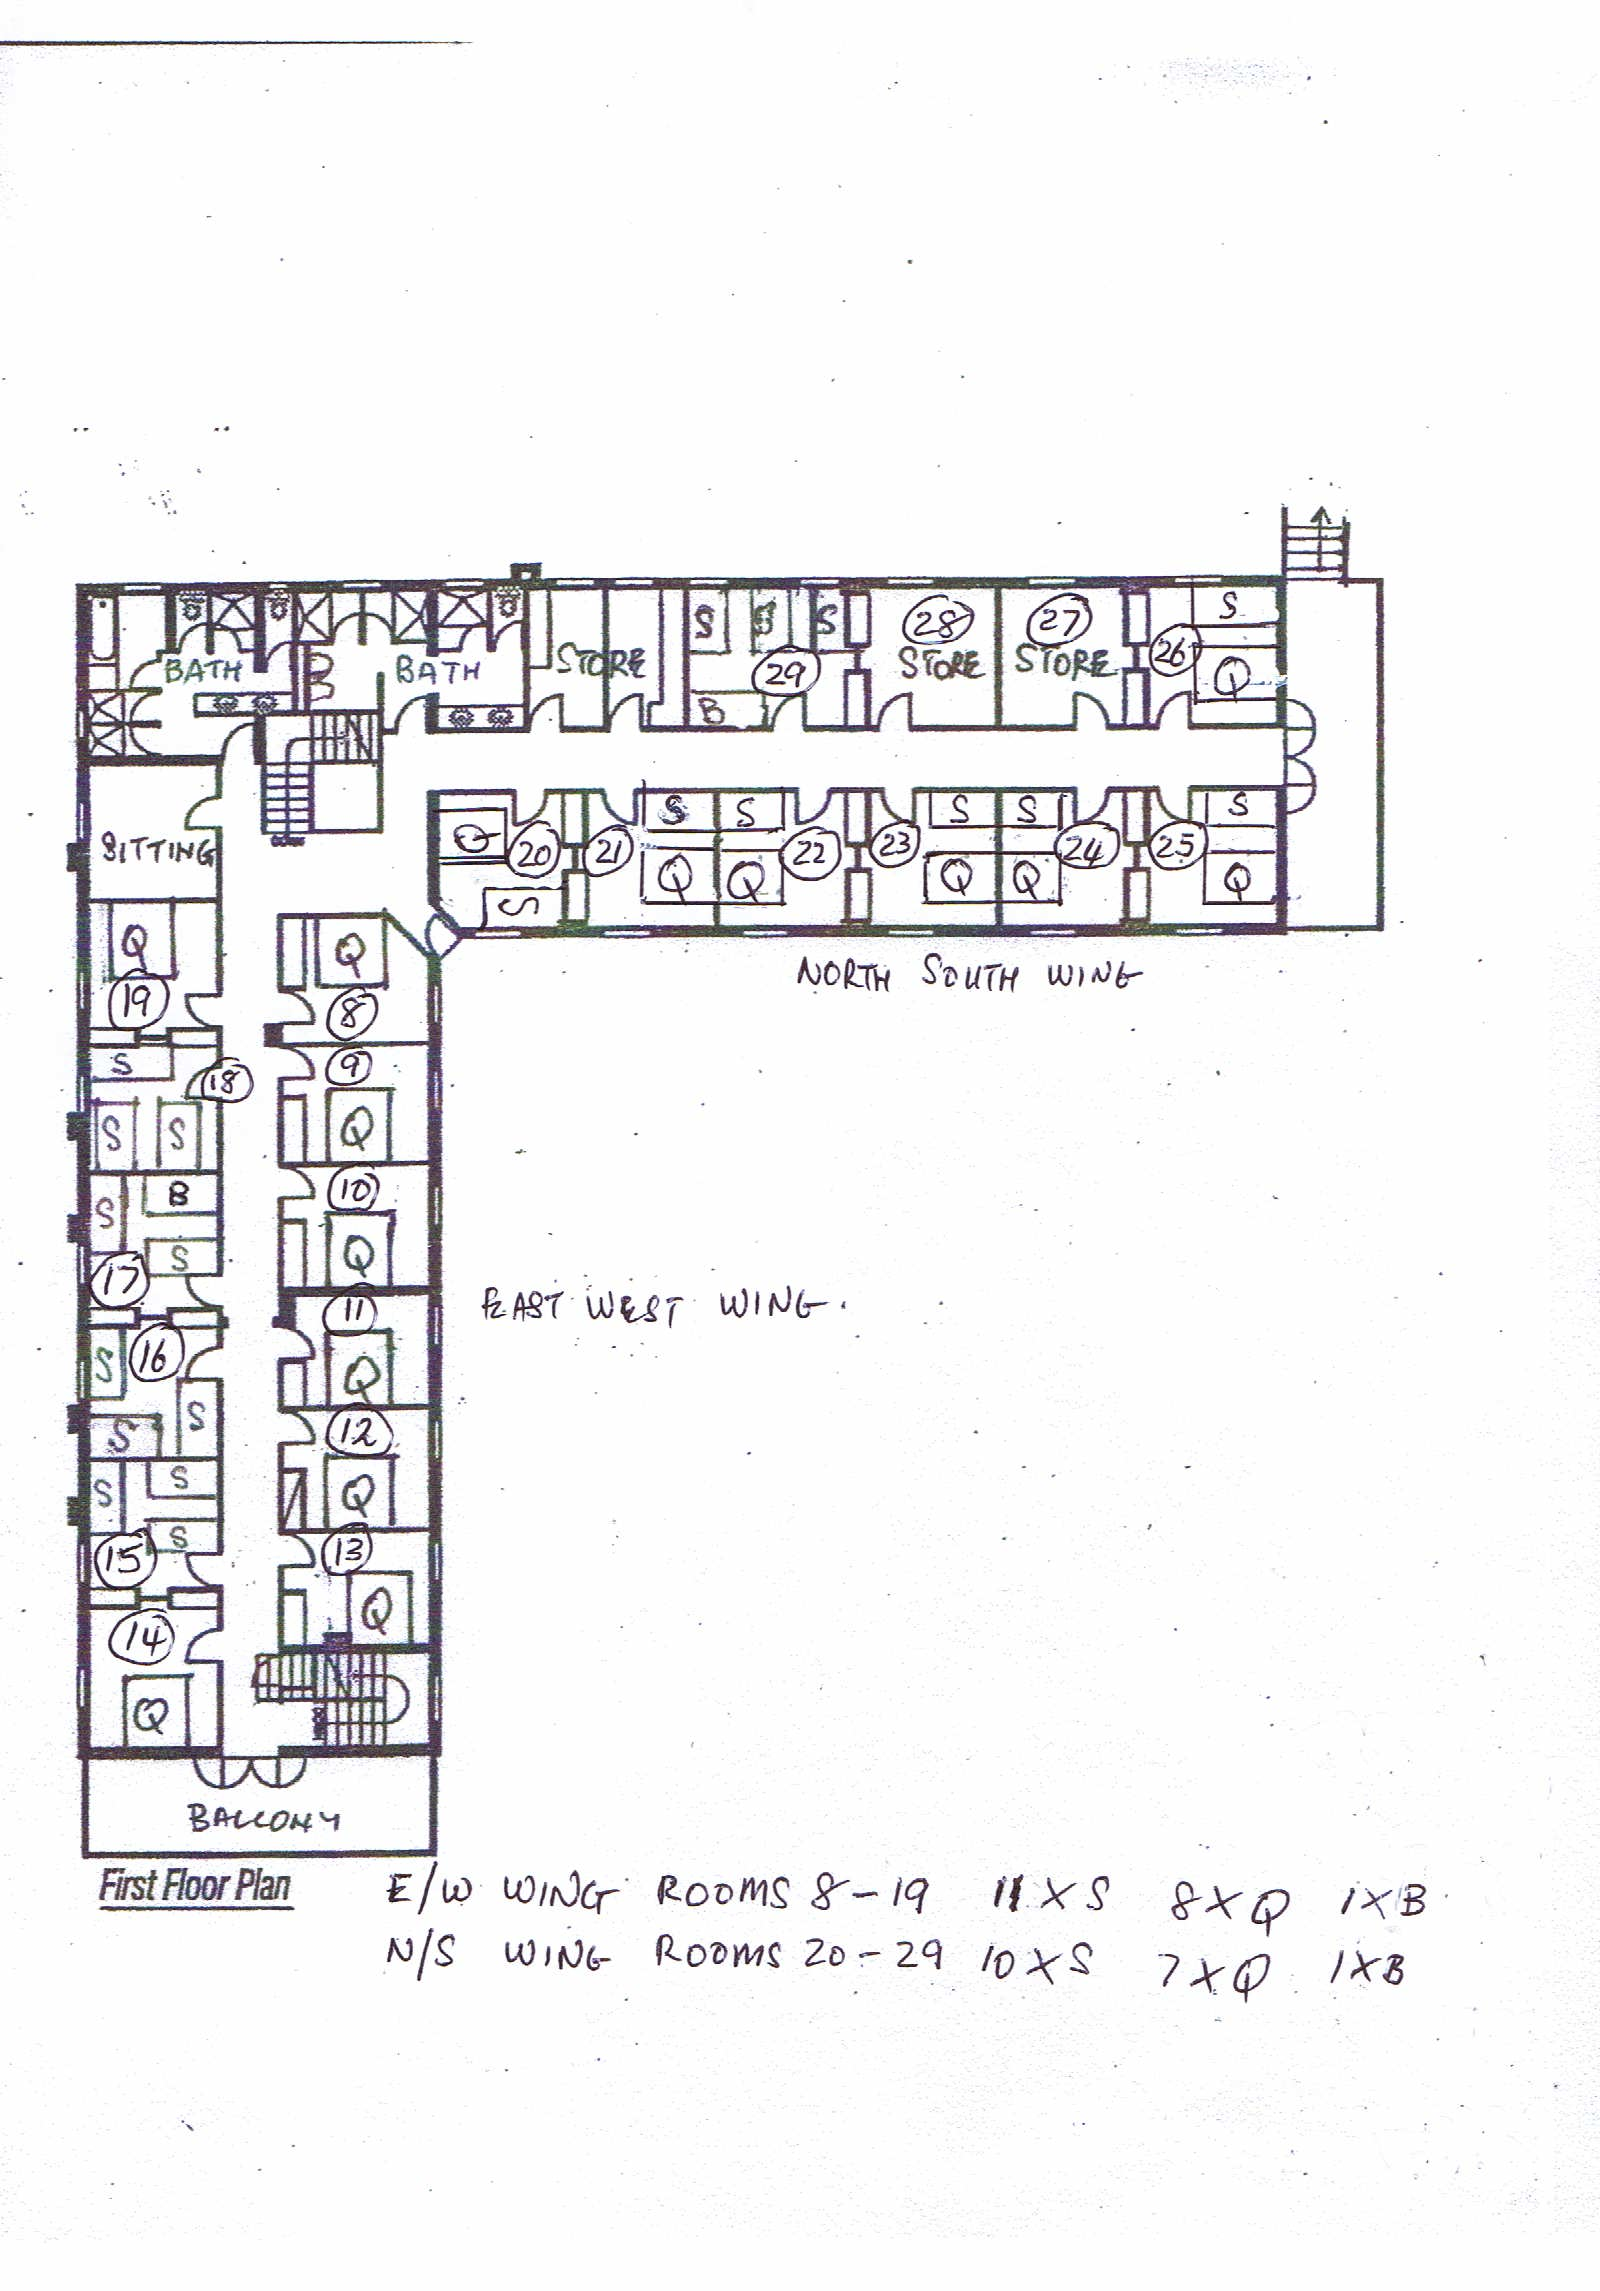 Upper floor bed configuration and room numbers